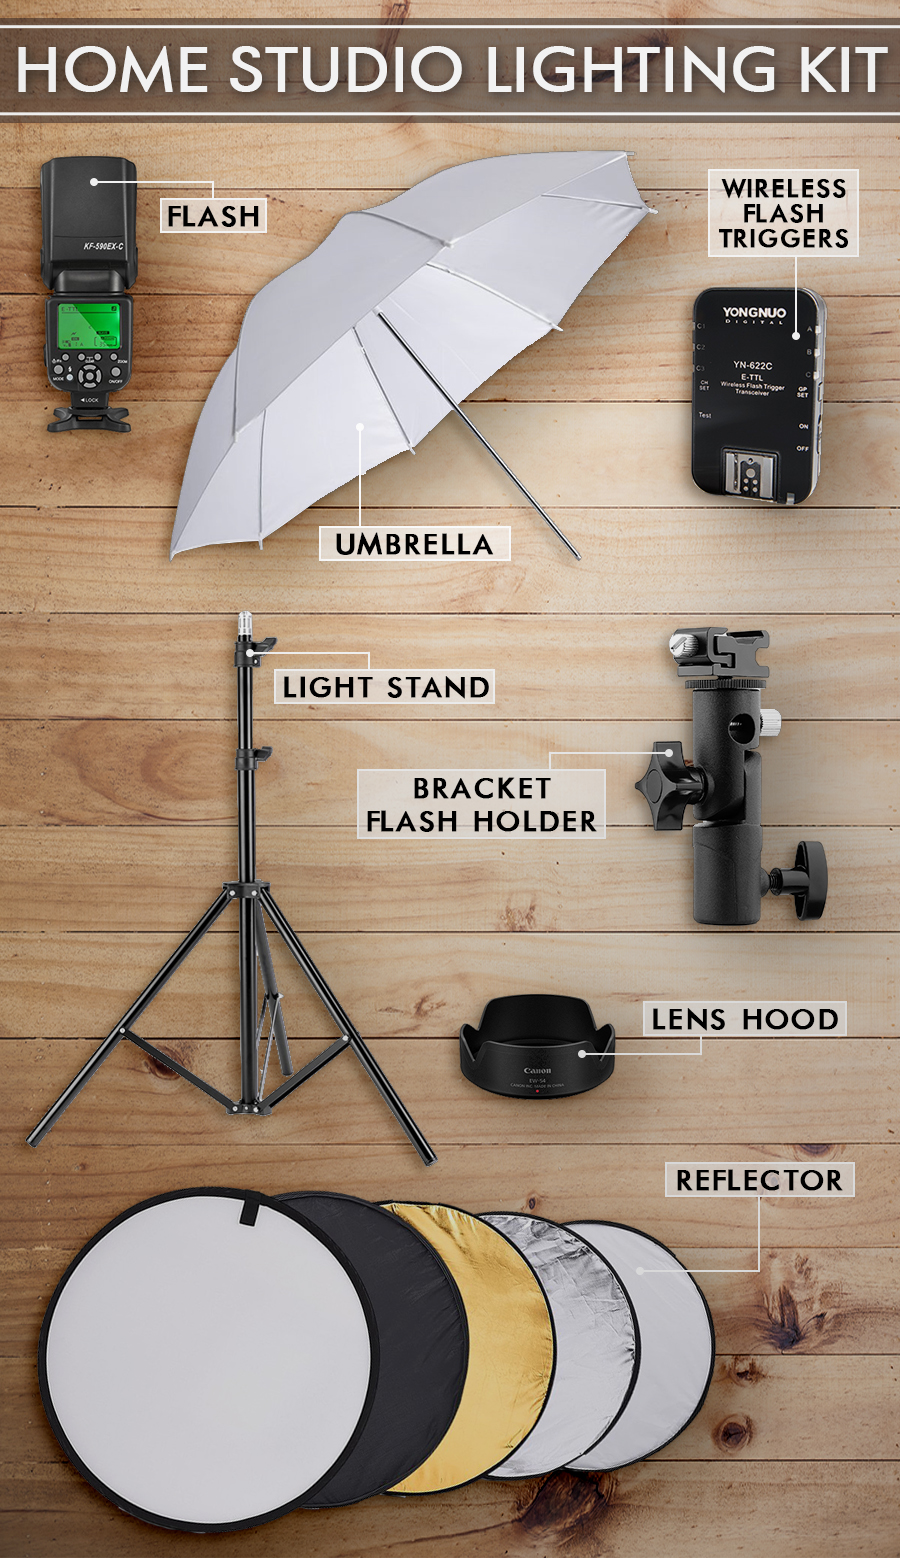 & Home Photography Studio - Easy Affordable Useful